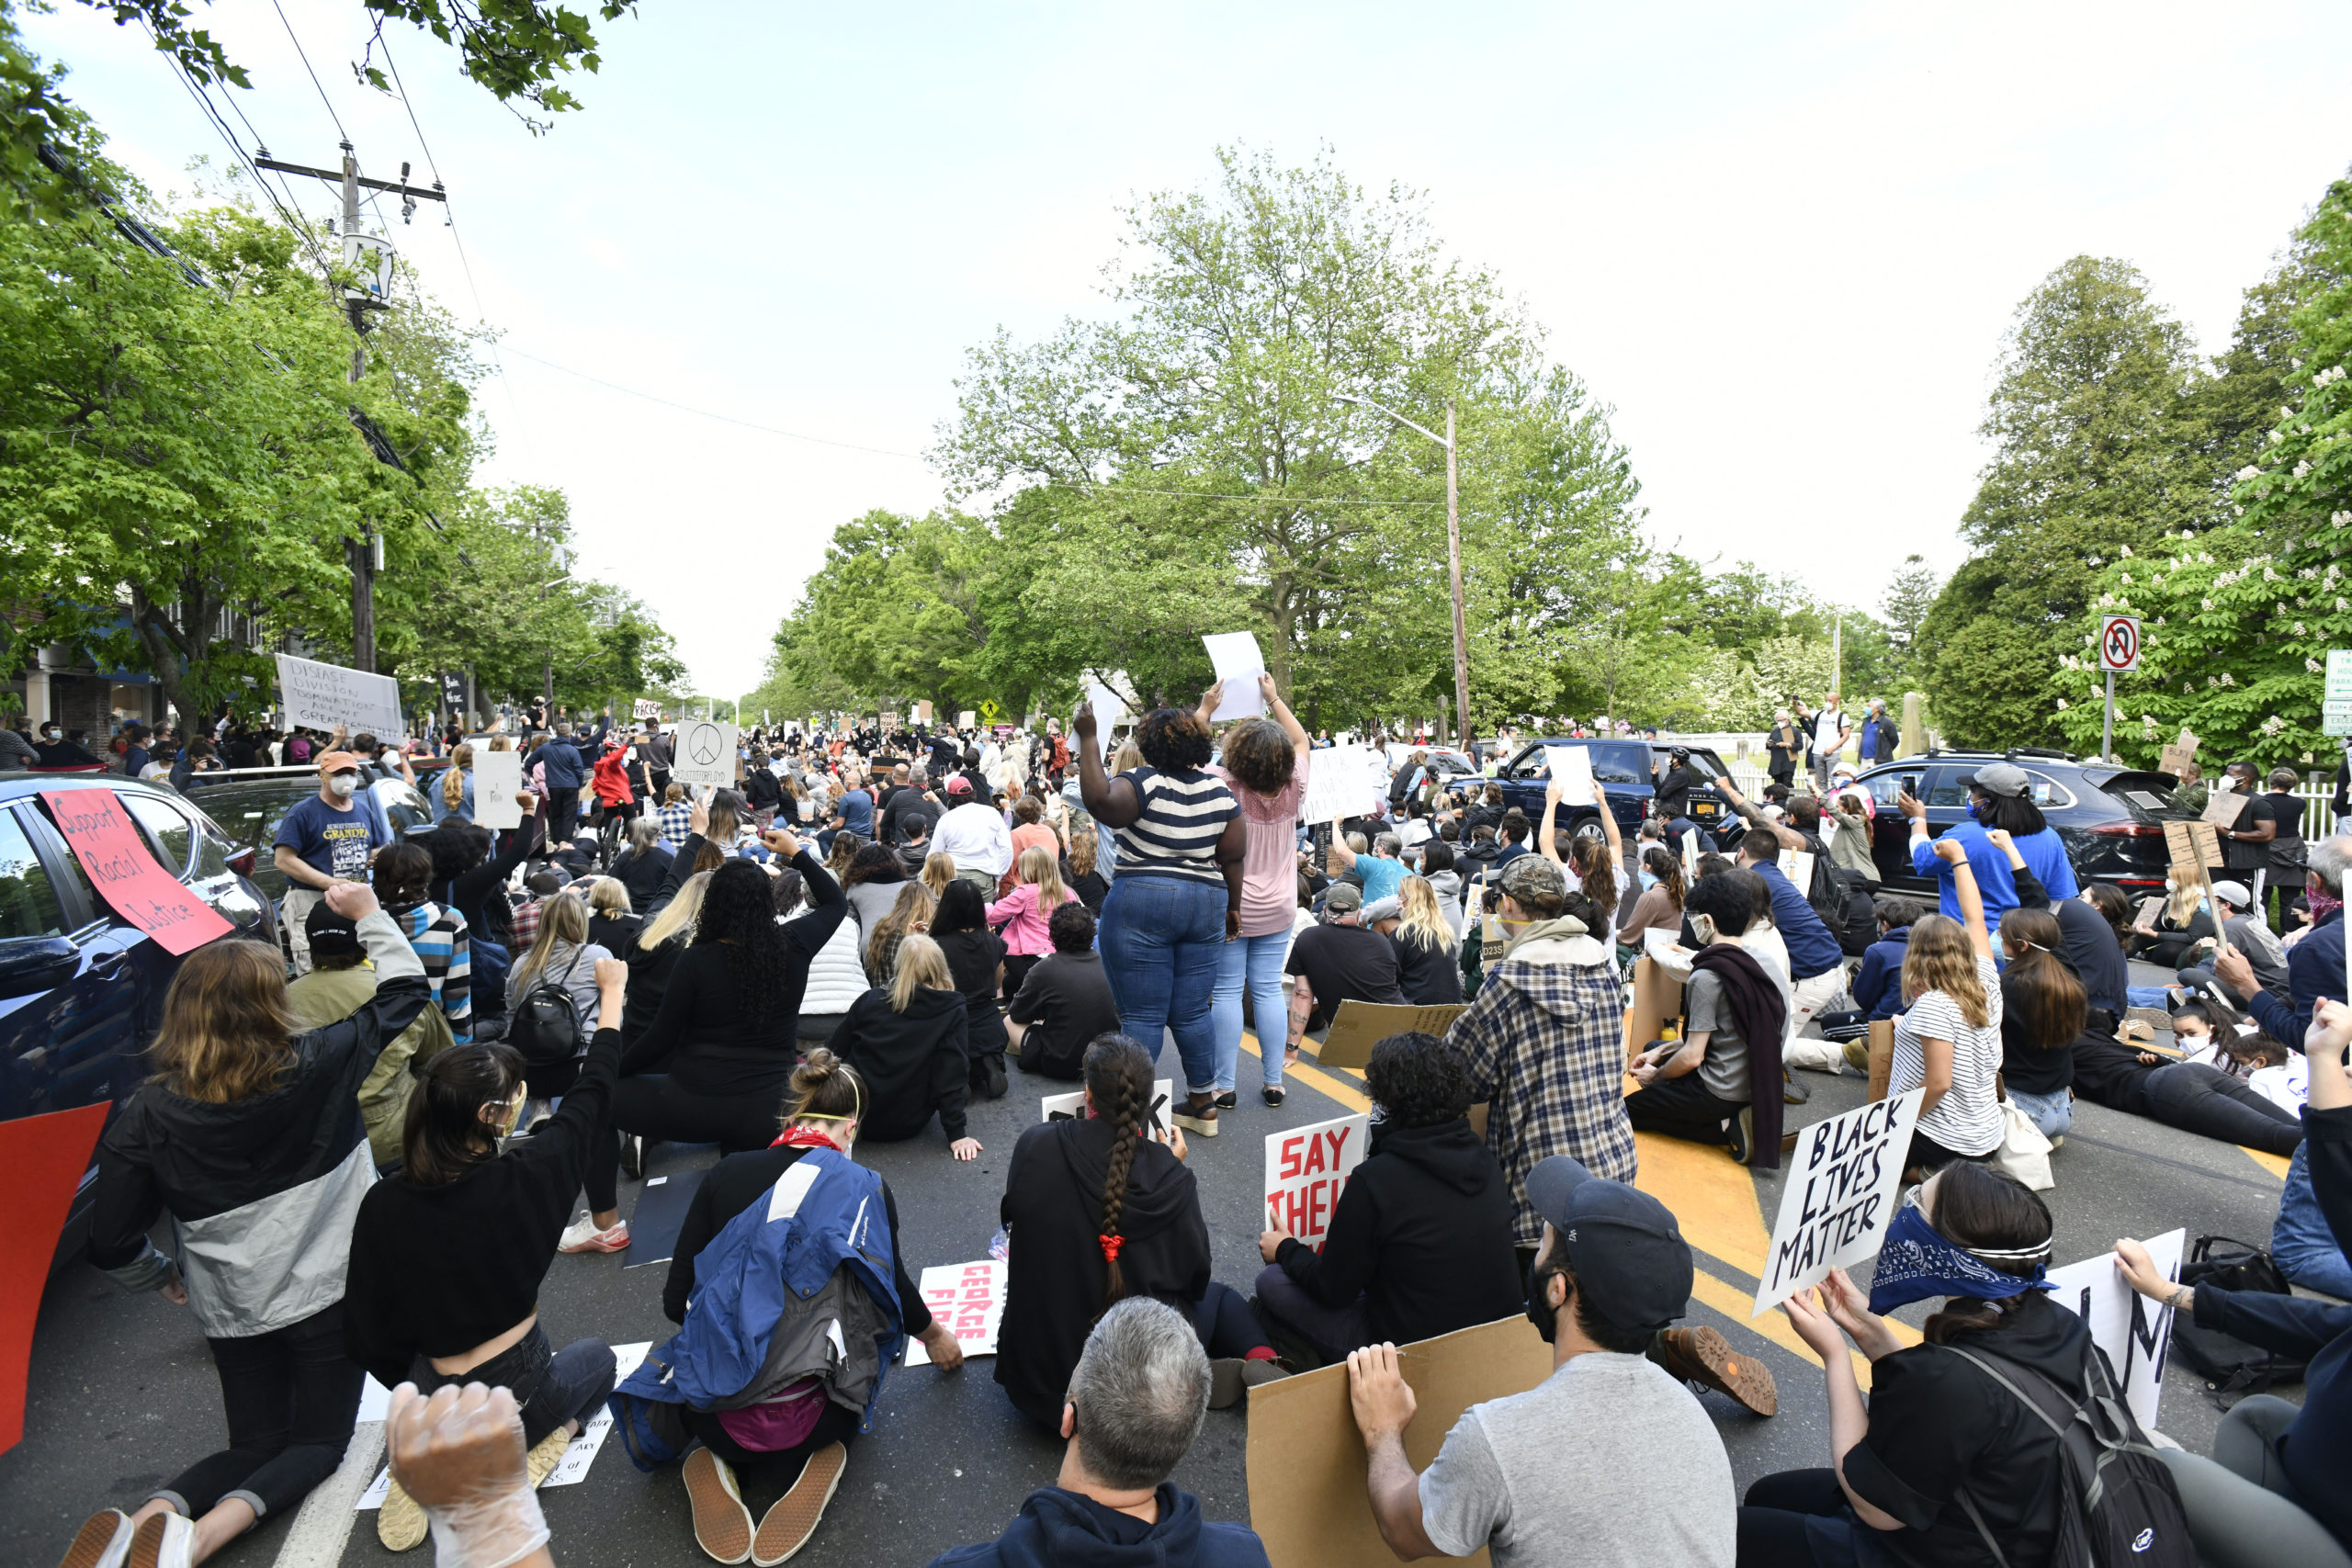 Hundreds of people gathered in Bridgehampton on Tuesday evening to protest the death of George Floyd.